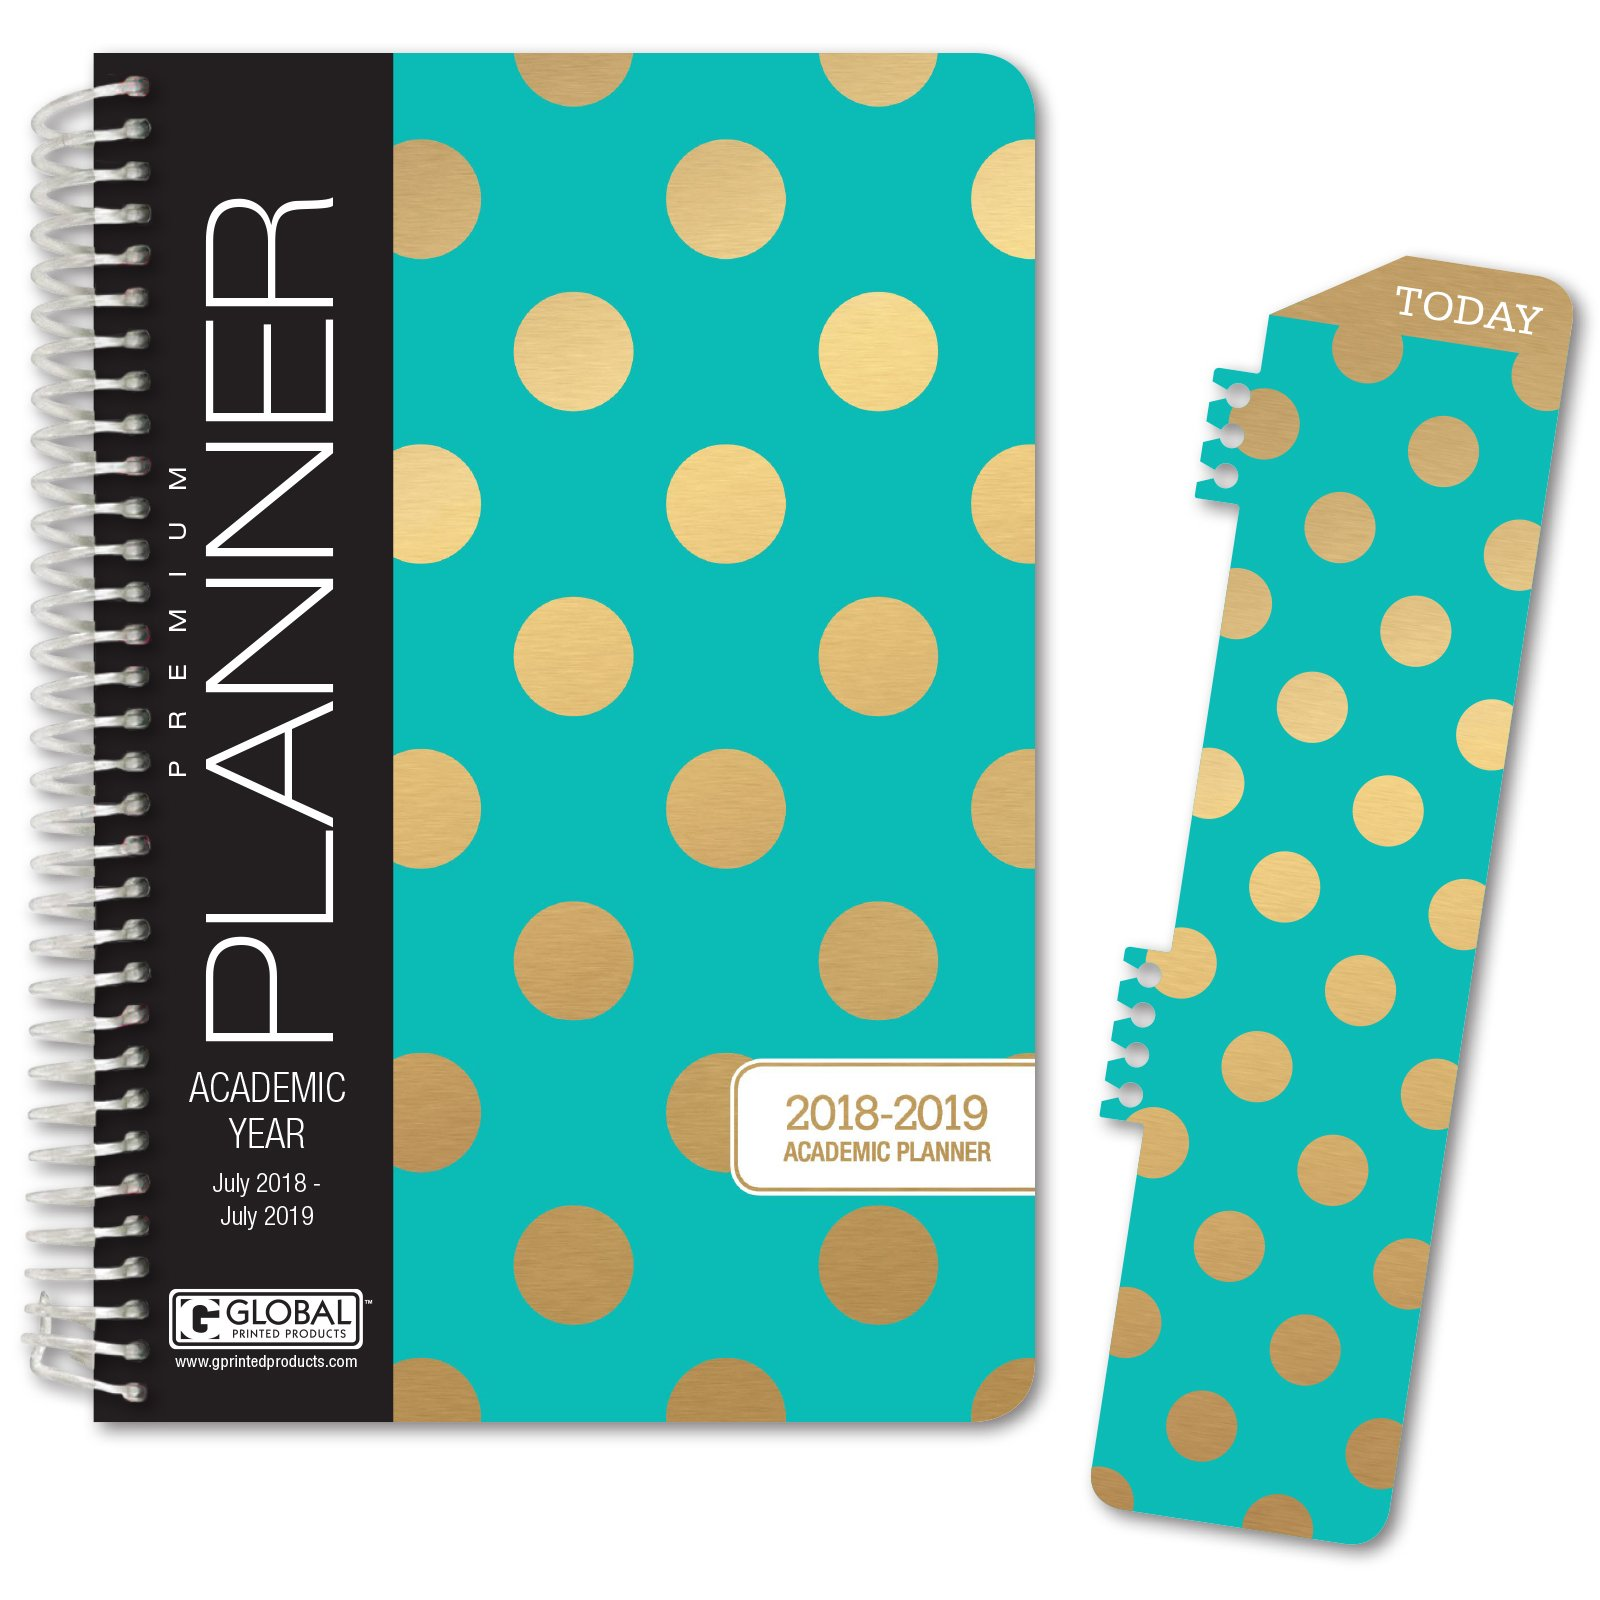 HARDCOVER Academic Year Planner 2018-2019 - 5.5''x8'' Daily Planner/Weekly Planner/Monthly Planner/Yearly Agenda. Bonus Bookmark (Gold Dots Turquoise)